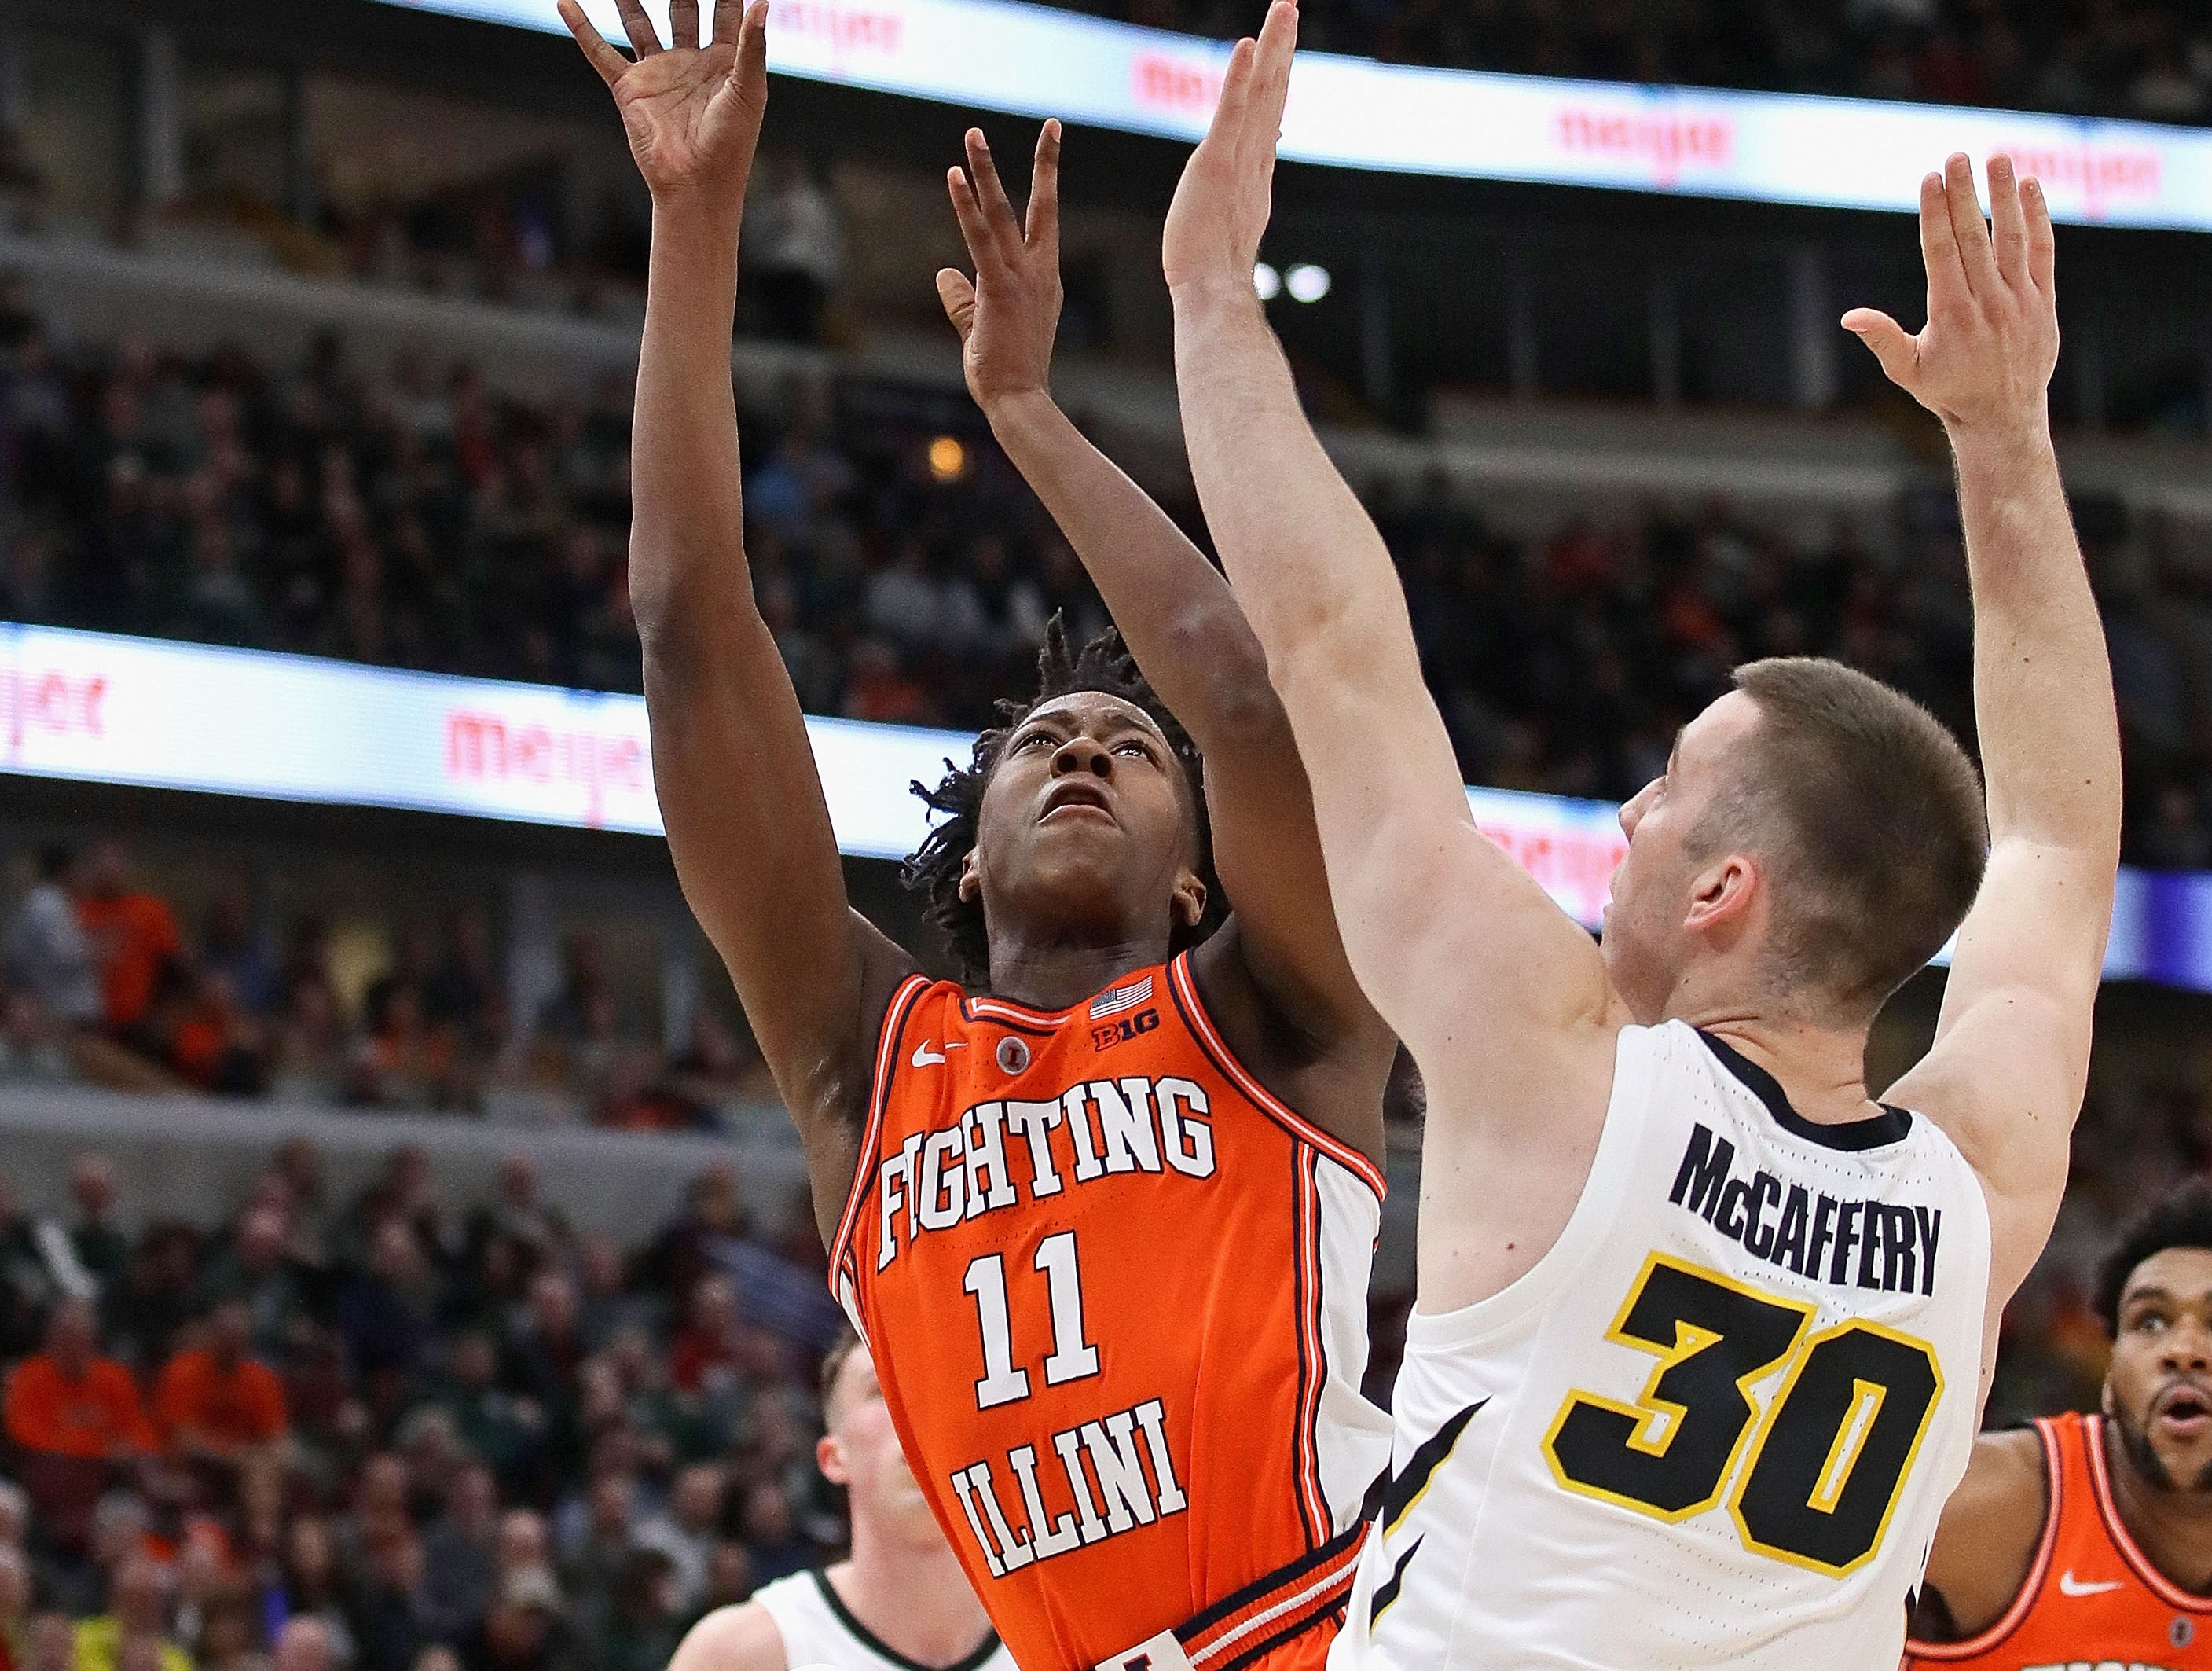 CHICAGO, ILLINOIS - MARCH 14: Ayo Dosunmu #11 of the Illinois Fighting Illini shoots against Connor McCaffery #30 of the Iowa Hawkeyes at the United Center on March 14, 2019 in Chicago, Illinois.  (Photo by Jonathan Daniel/Getty Images)